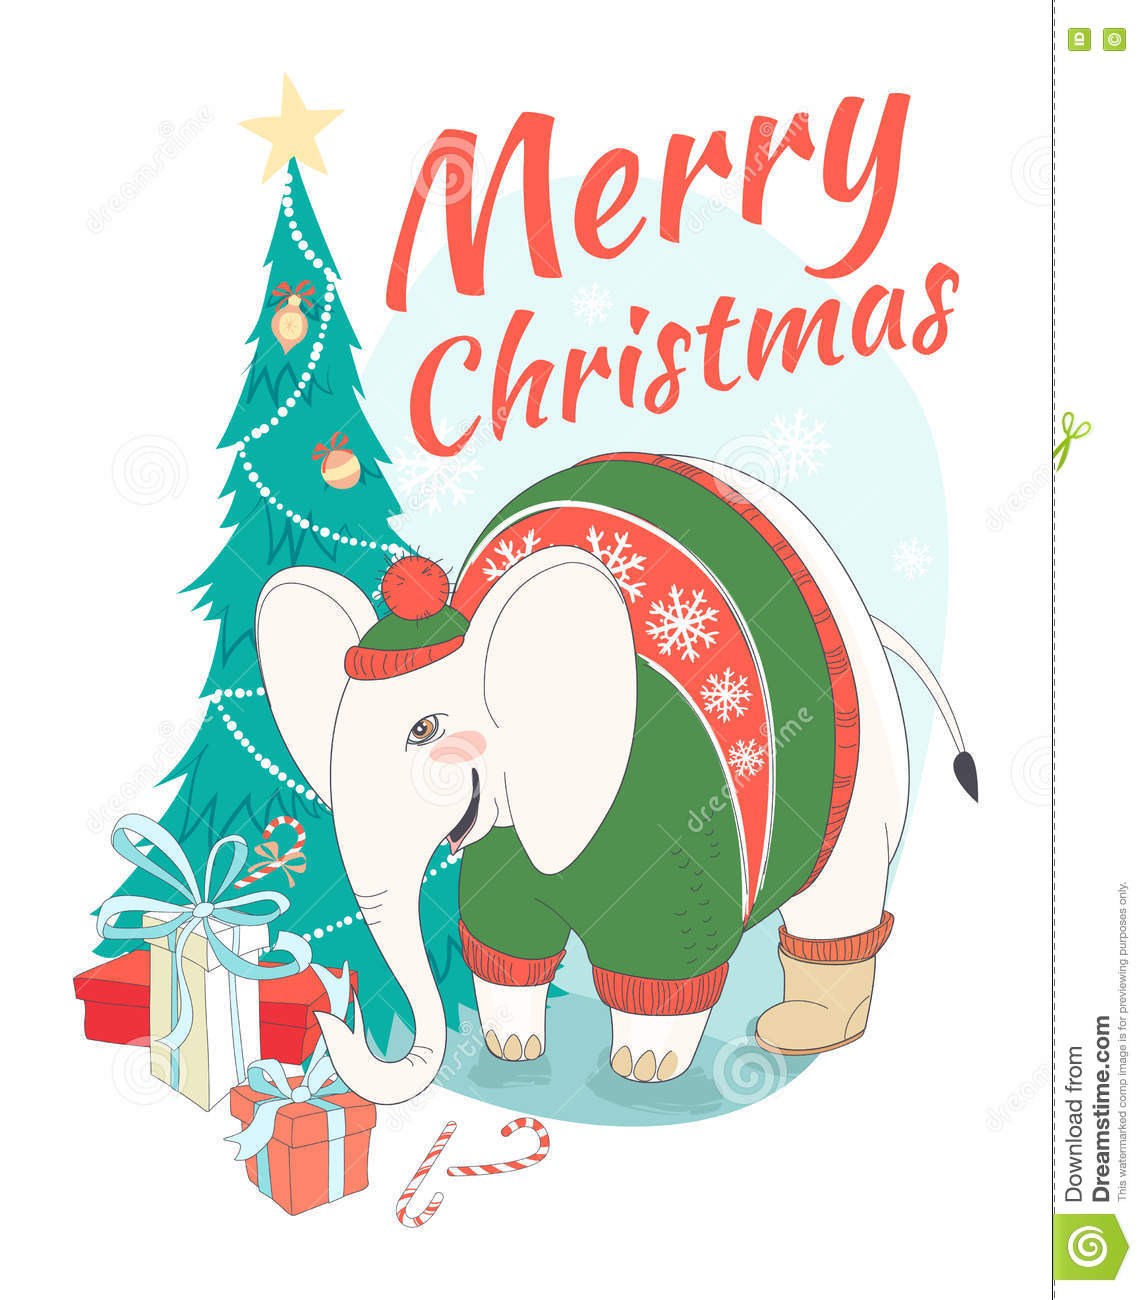 download funny merry christmas card with elephant wearing cute sweater an stock vector illustration of - Funny Merry Christmas Images